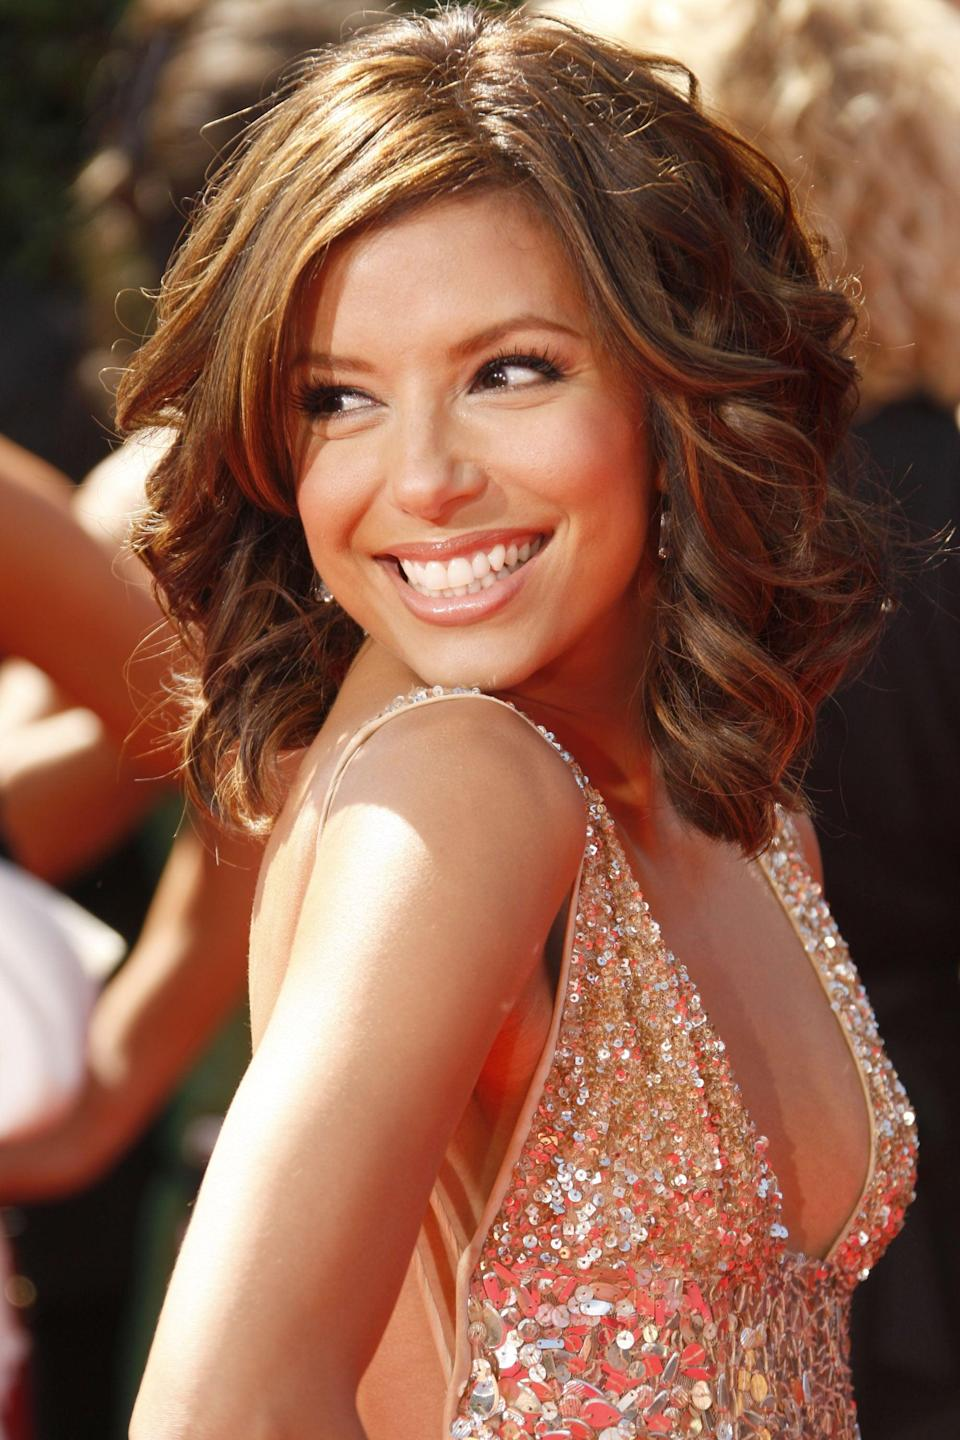 "<p>In 2007, <a class=""link rapid-noclick-resp"" href=""https://www.popsugar.com/Eva-Longoria"" rel=""nofollow noopener"" target=""_blank"" data-ylk=""slk:Eva Longoria"">Eva Longoria</a>'s long bob haircut was given a side part and bouncy curls.</p>"